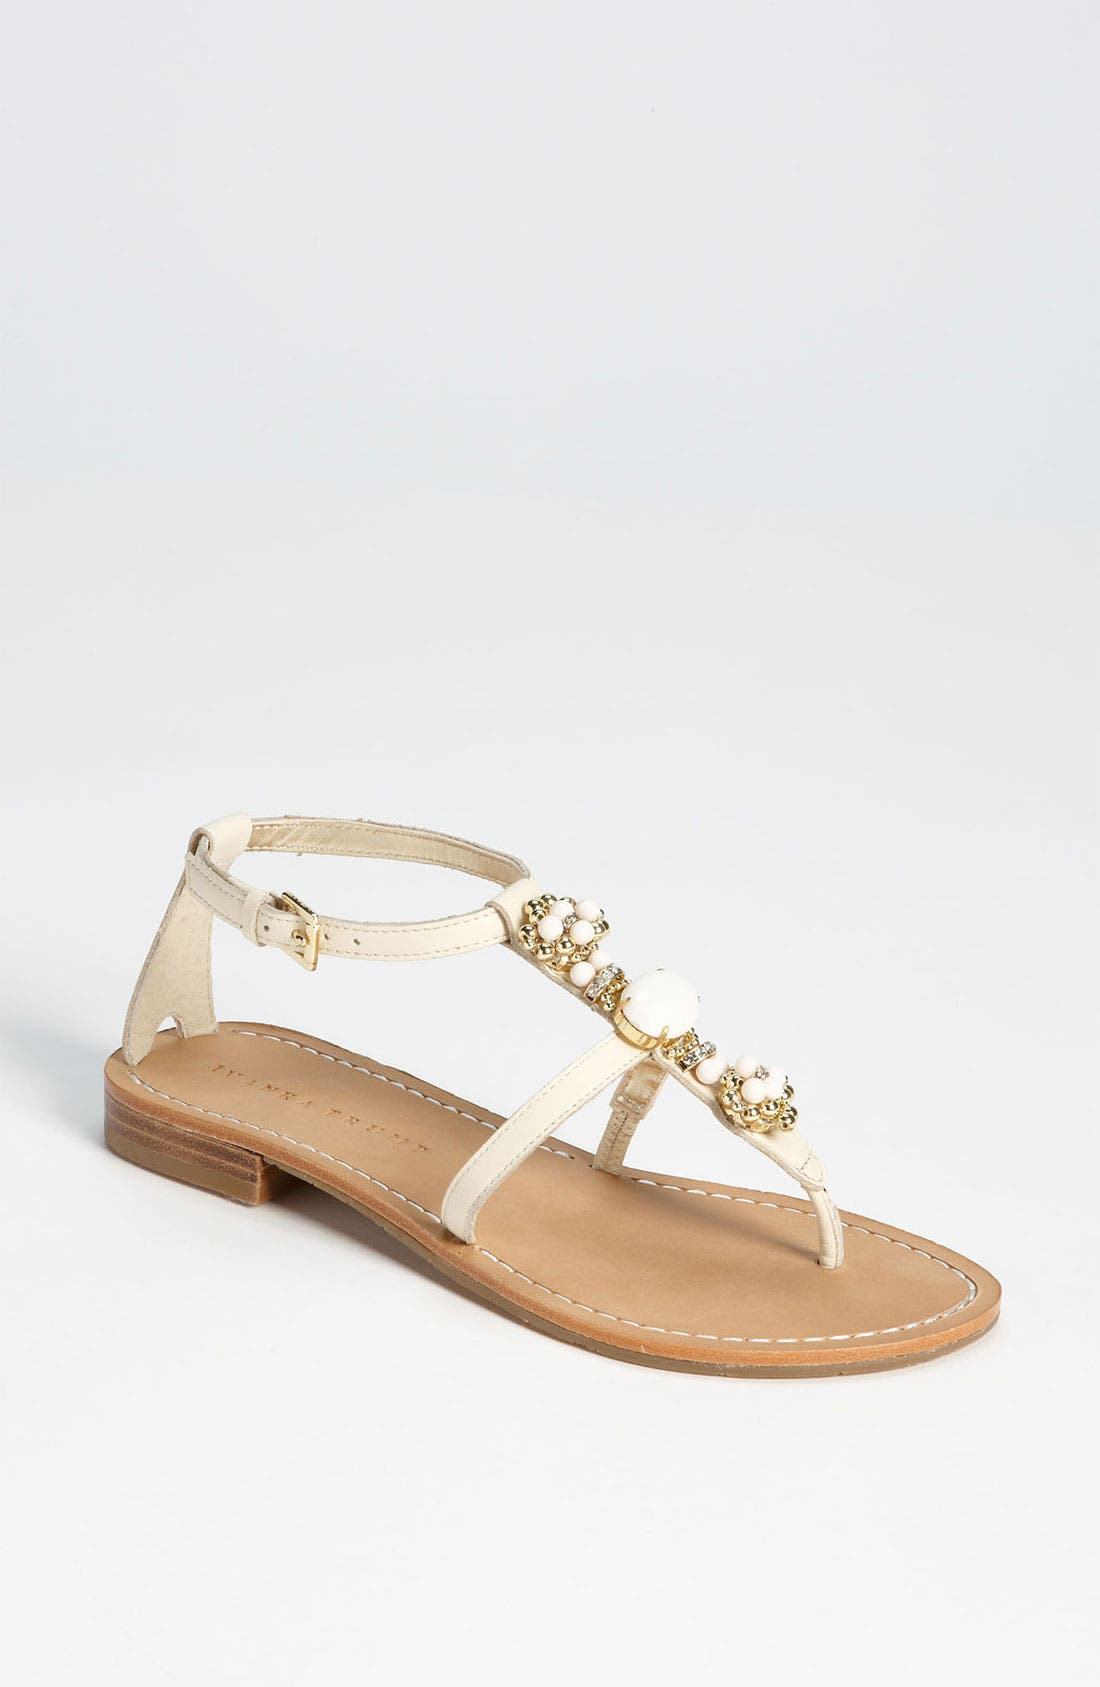 Alternate Image 1 Selected - Ivanka Trump 'Pepin' Sandal